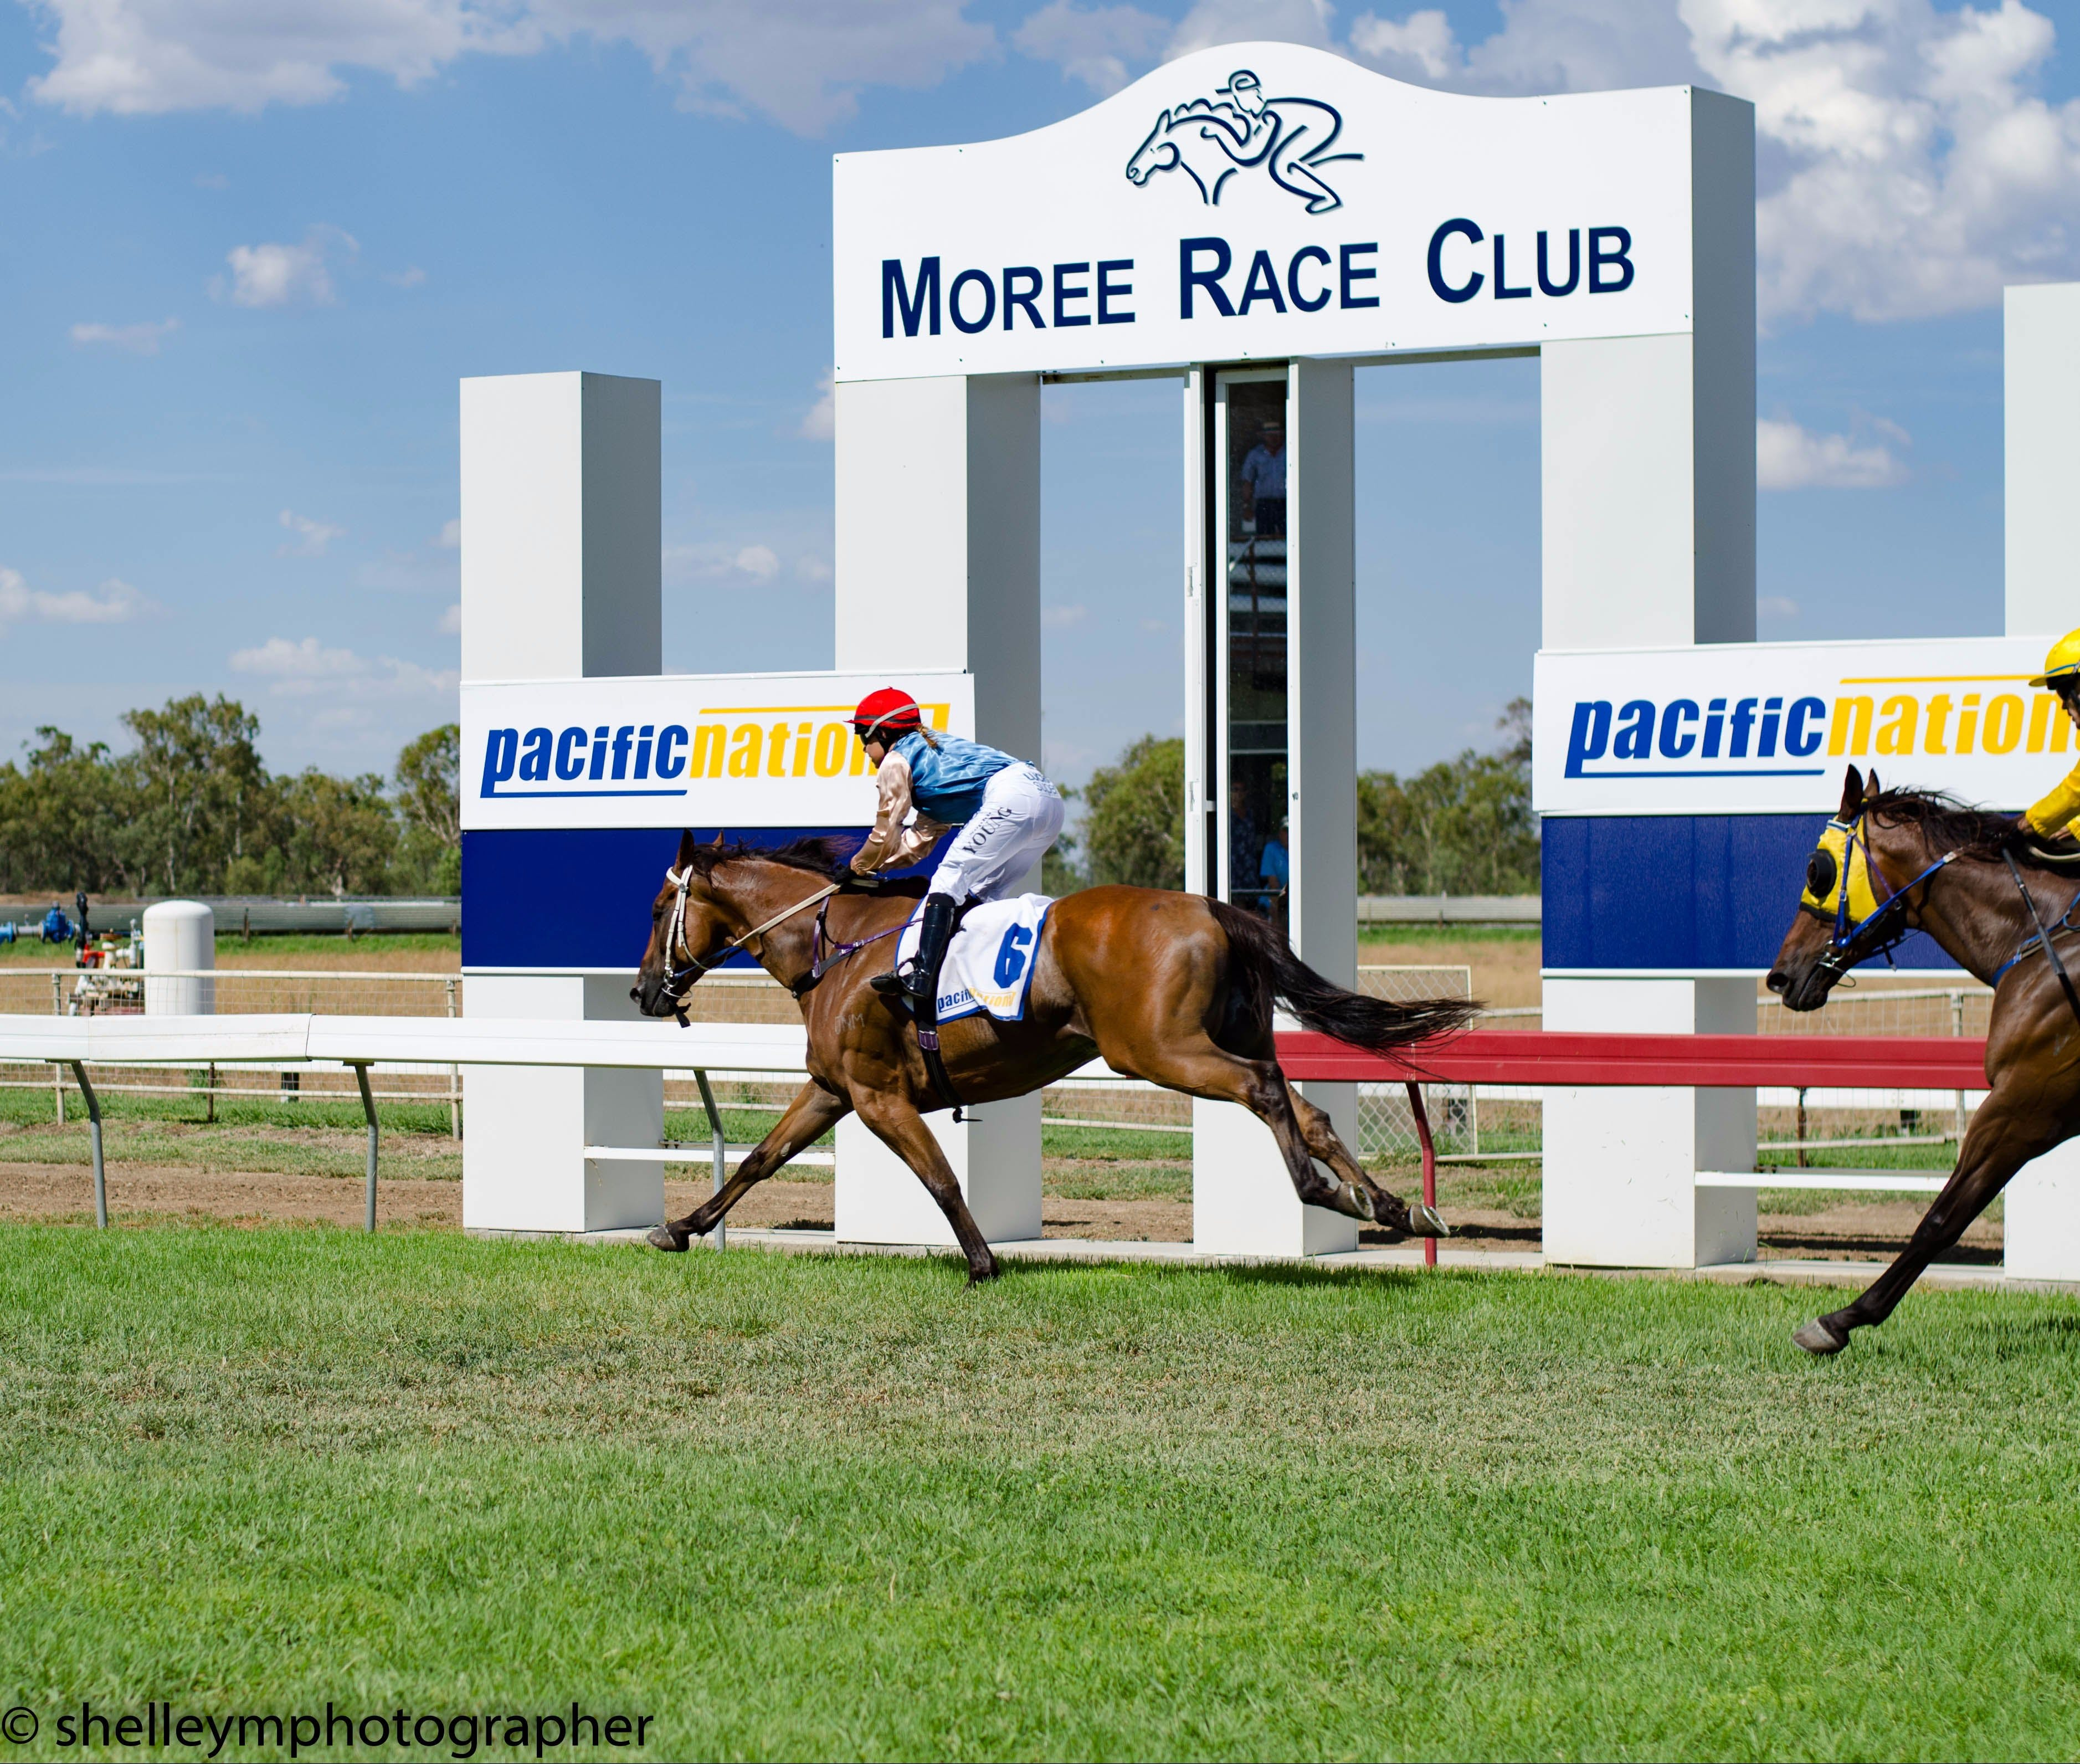 Moree Race Club TAB Race Day - ACT Tourism